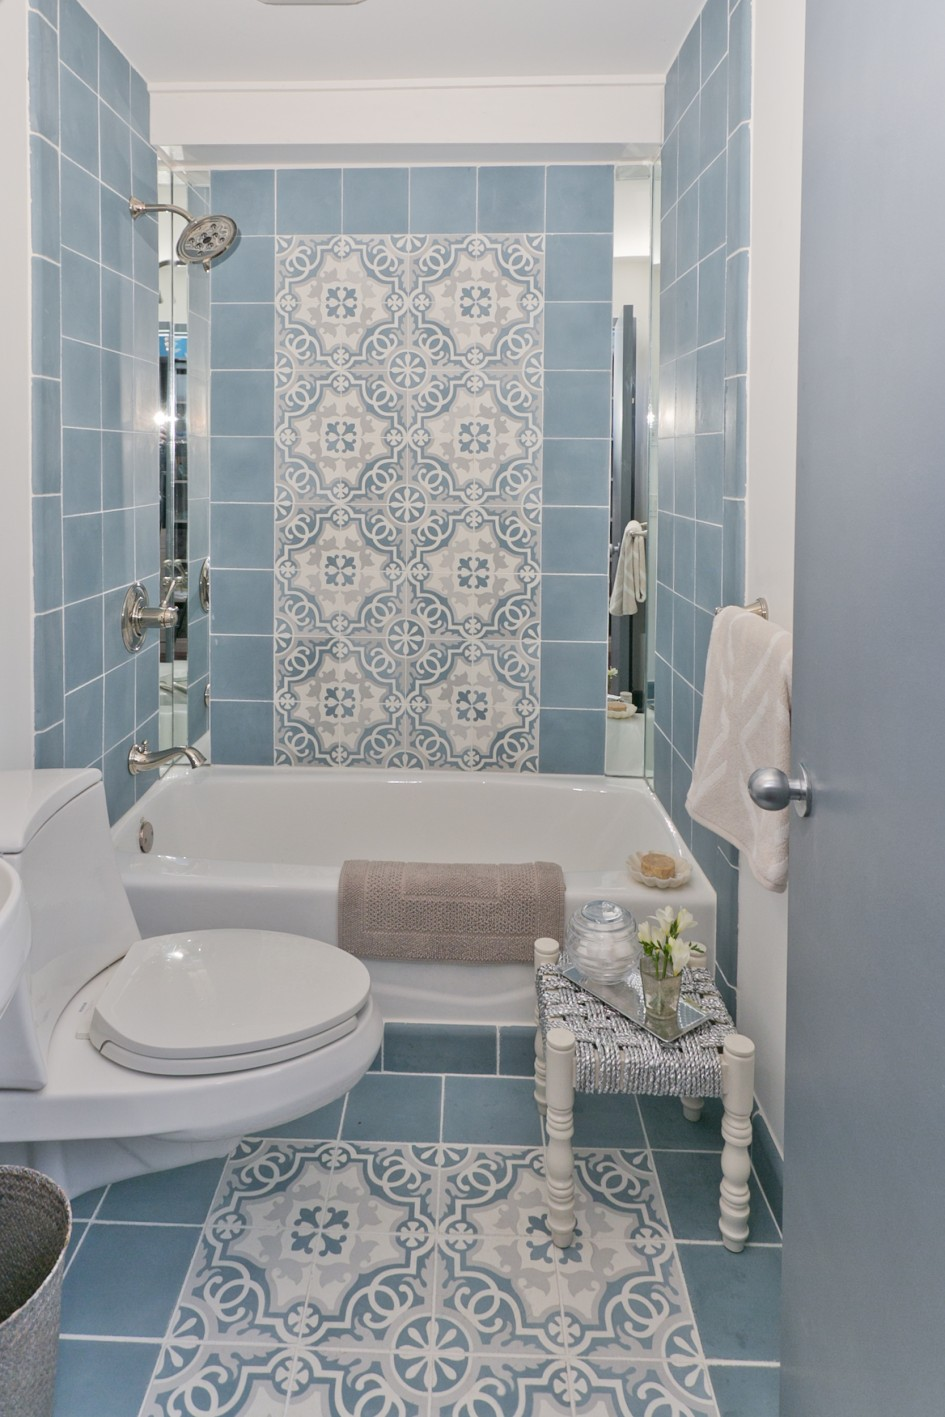 40 vintage blue bathroom tiles ideas and pictures for Petite salle de bain avec toilette